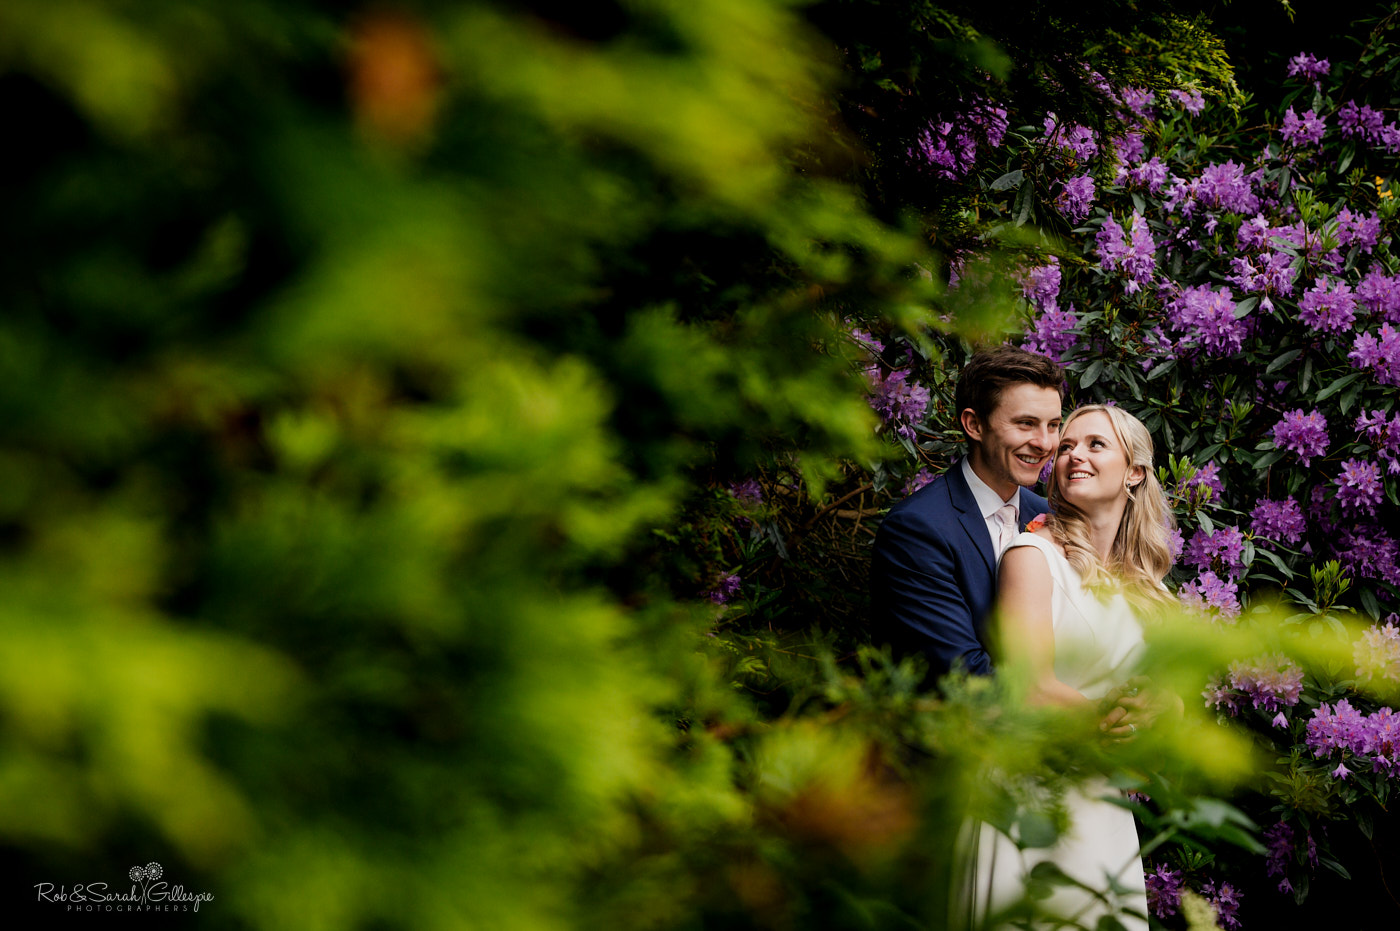 Wedding couple photos in Belbroughon, Worcestershire